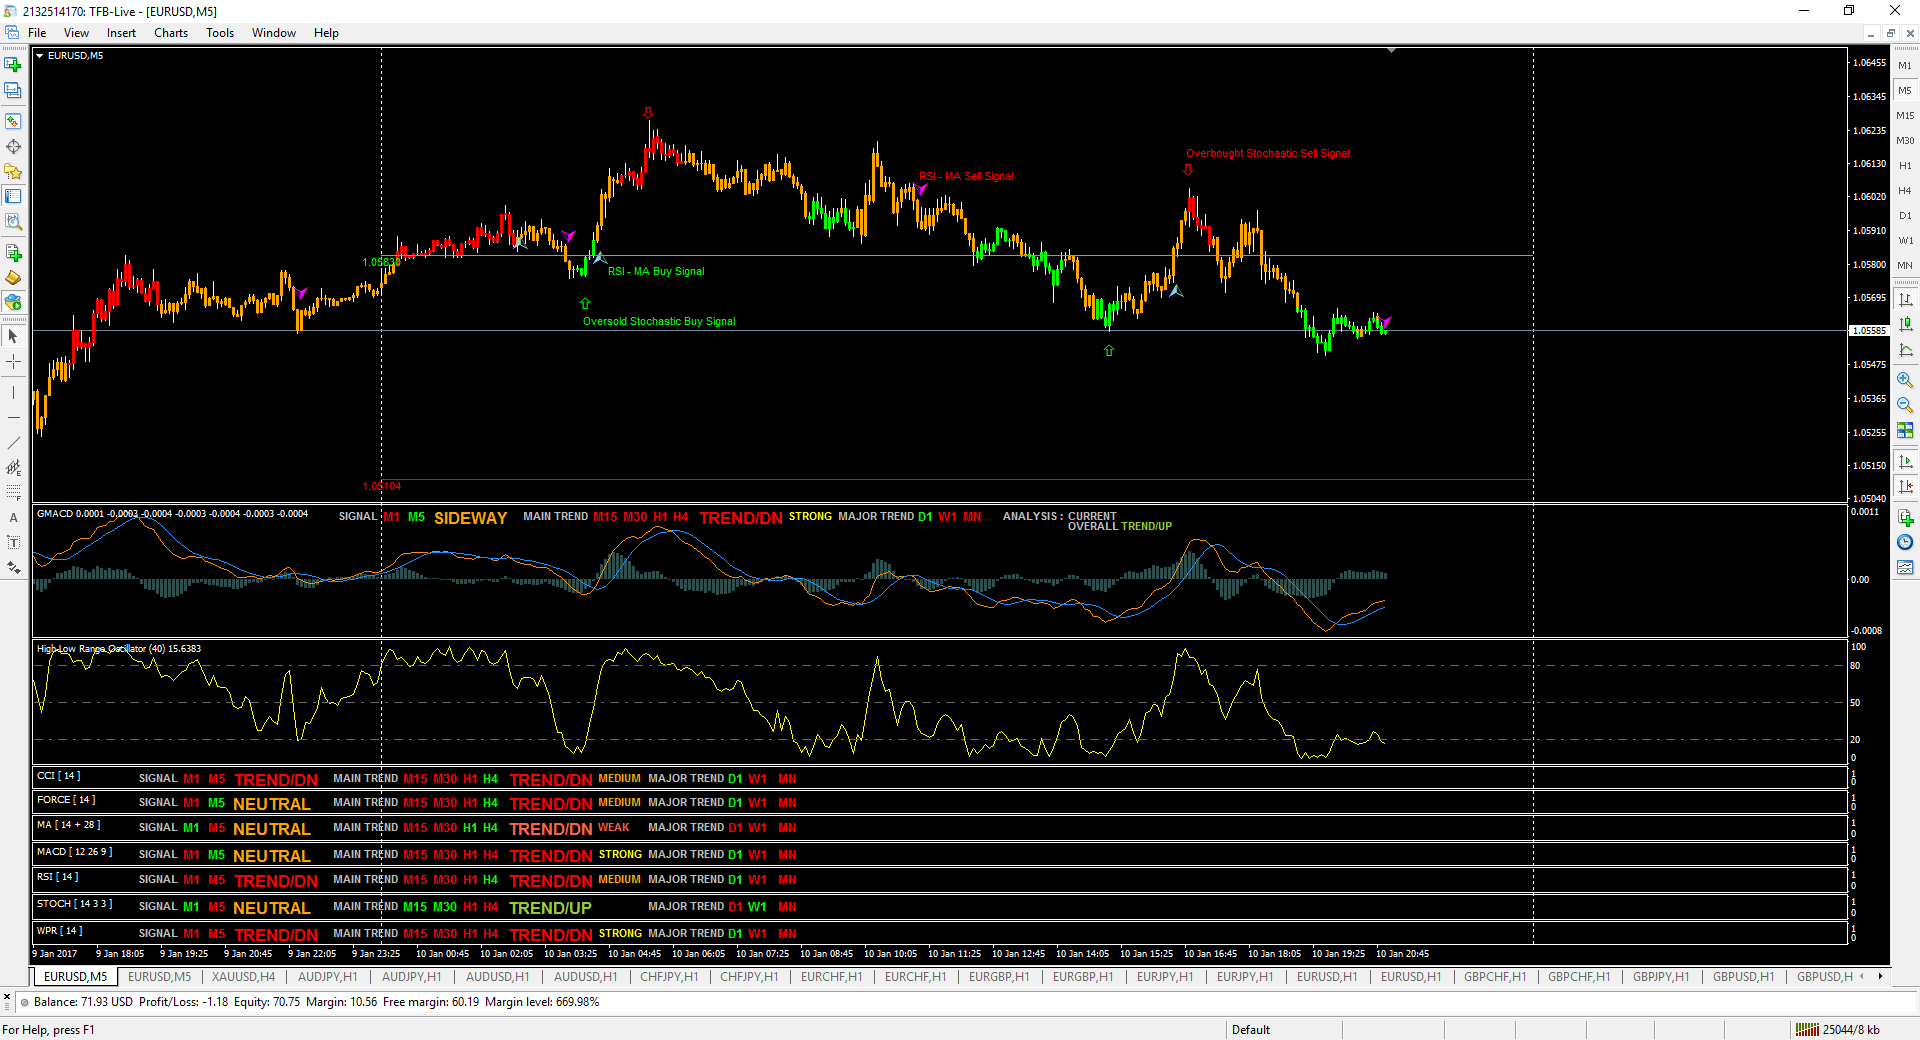 Rsi based trading system